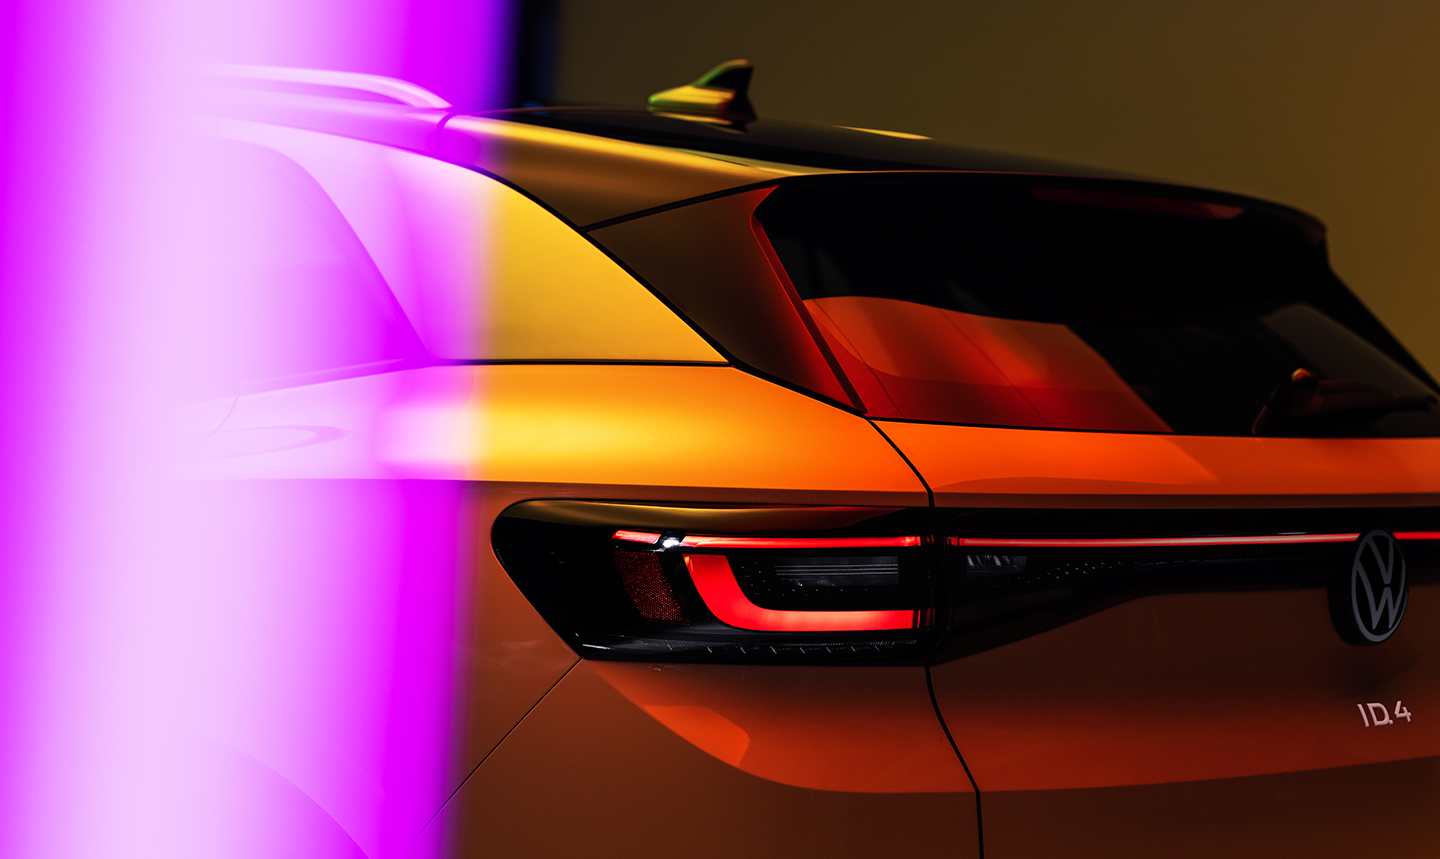 VW_NGW6_Showroom_ID4_Gallery_Exterior-2